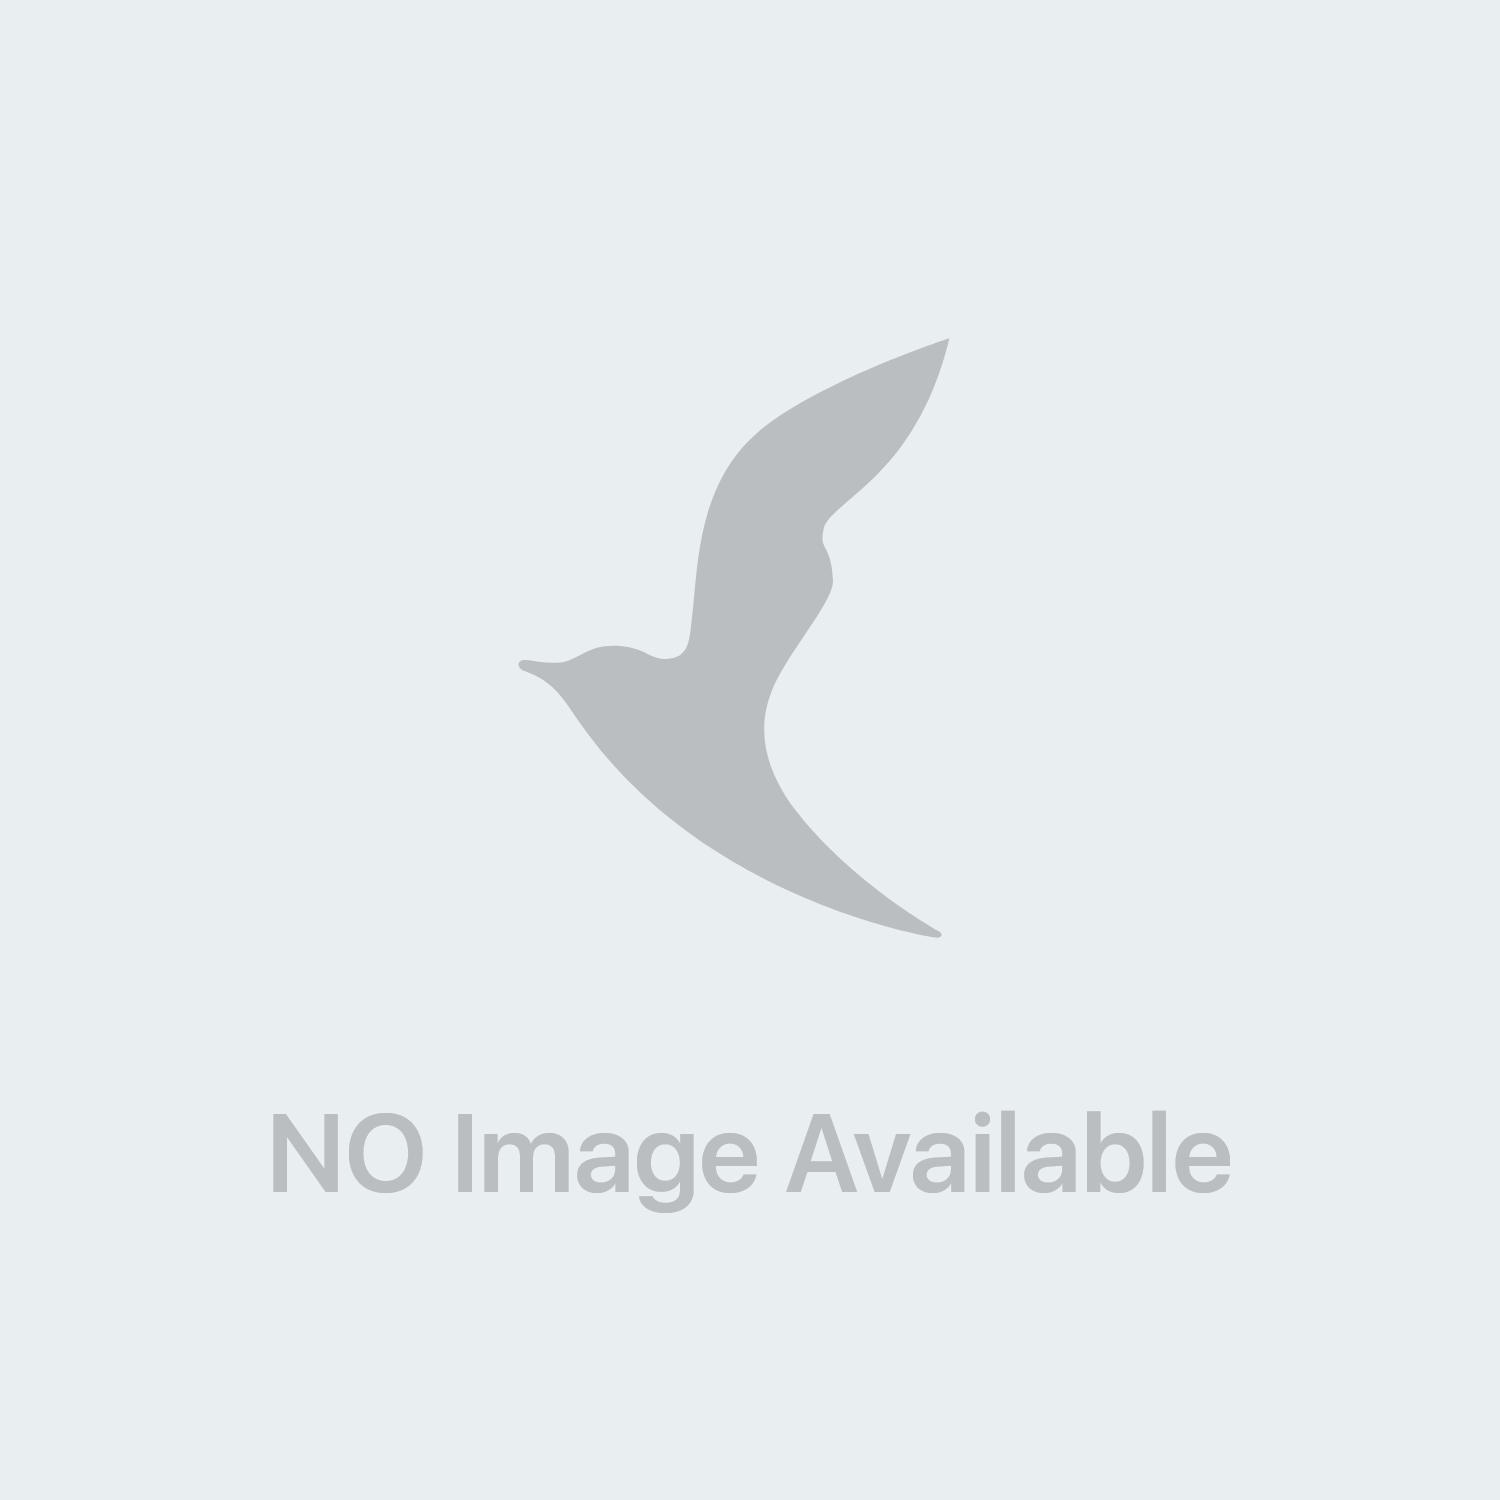 Dermoresearch Dierre Maschera Pelle Grassa 50 Ml